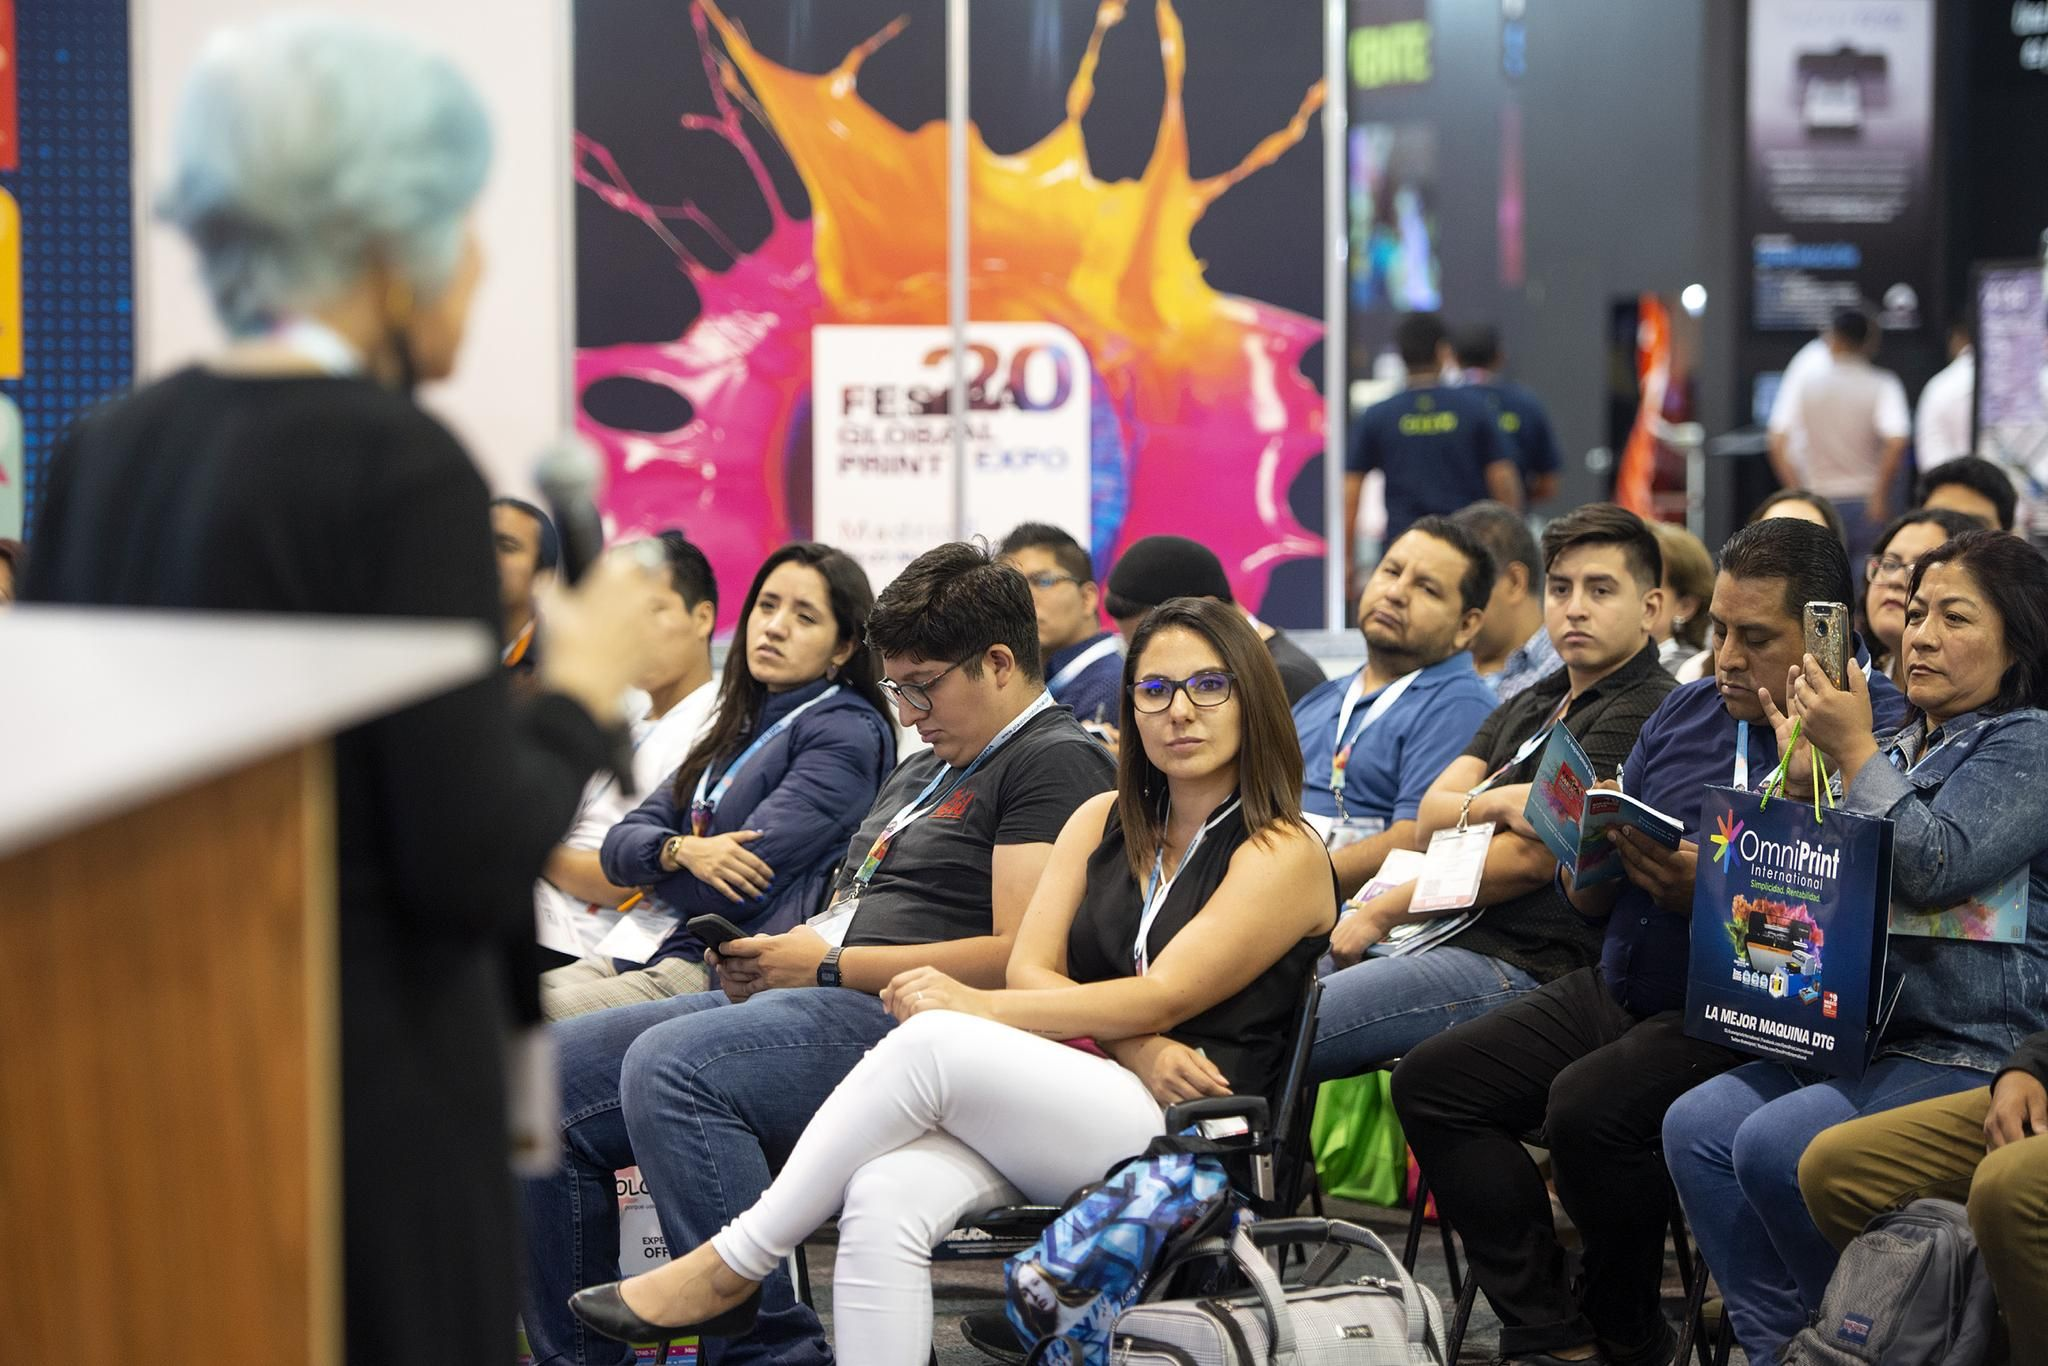 FESPA Mexico Conference 2019 - wide format digital printing, screen and textile print, garment decoration and signage